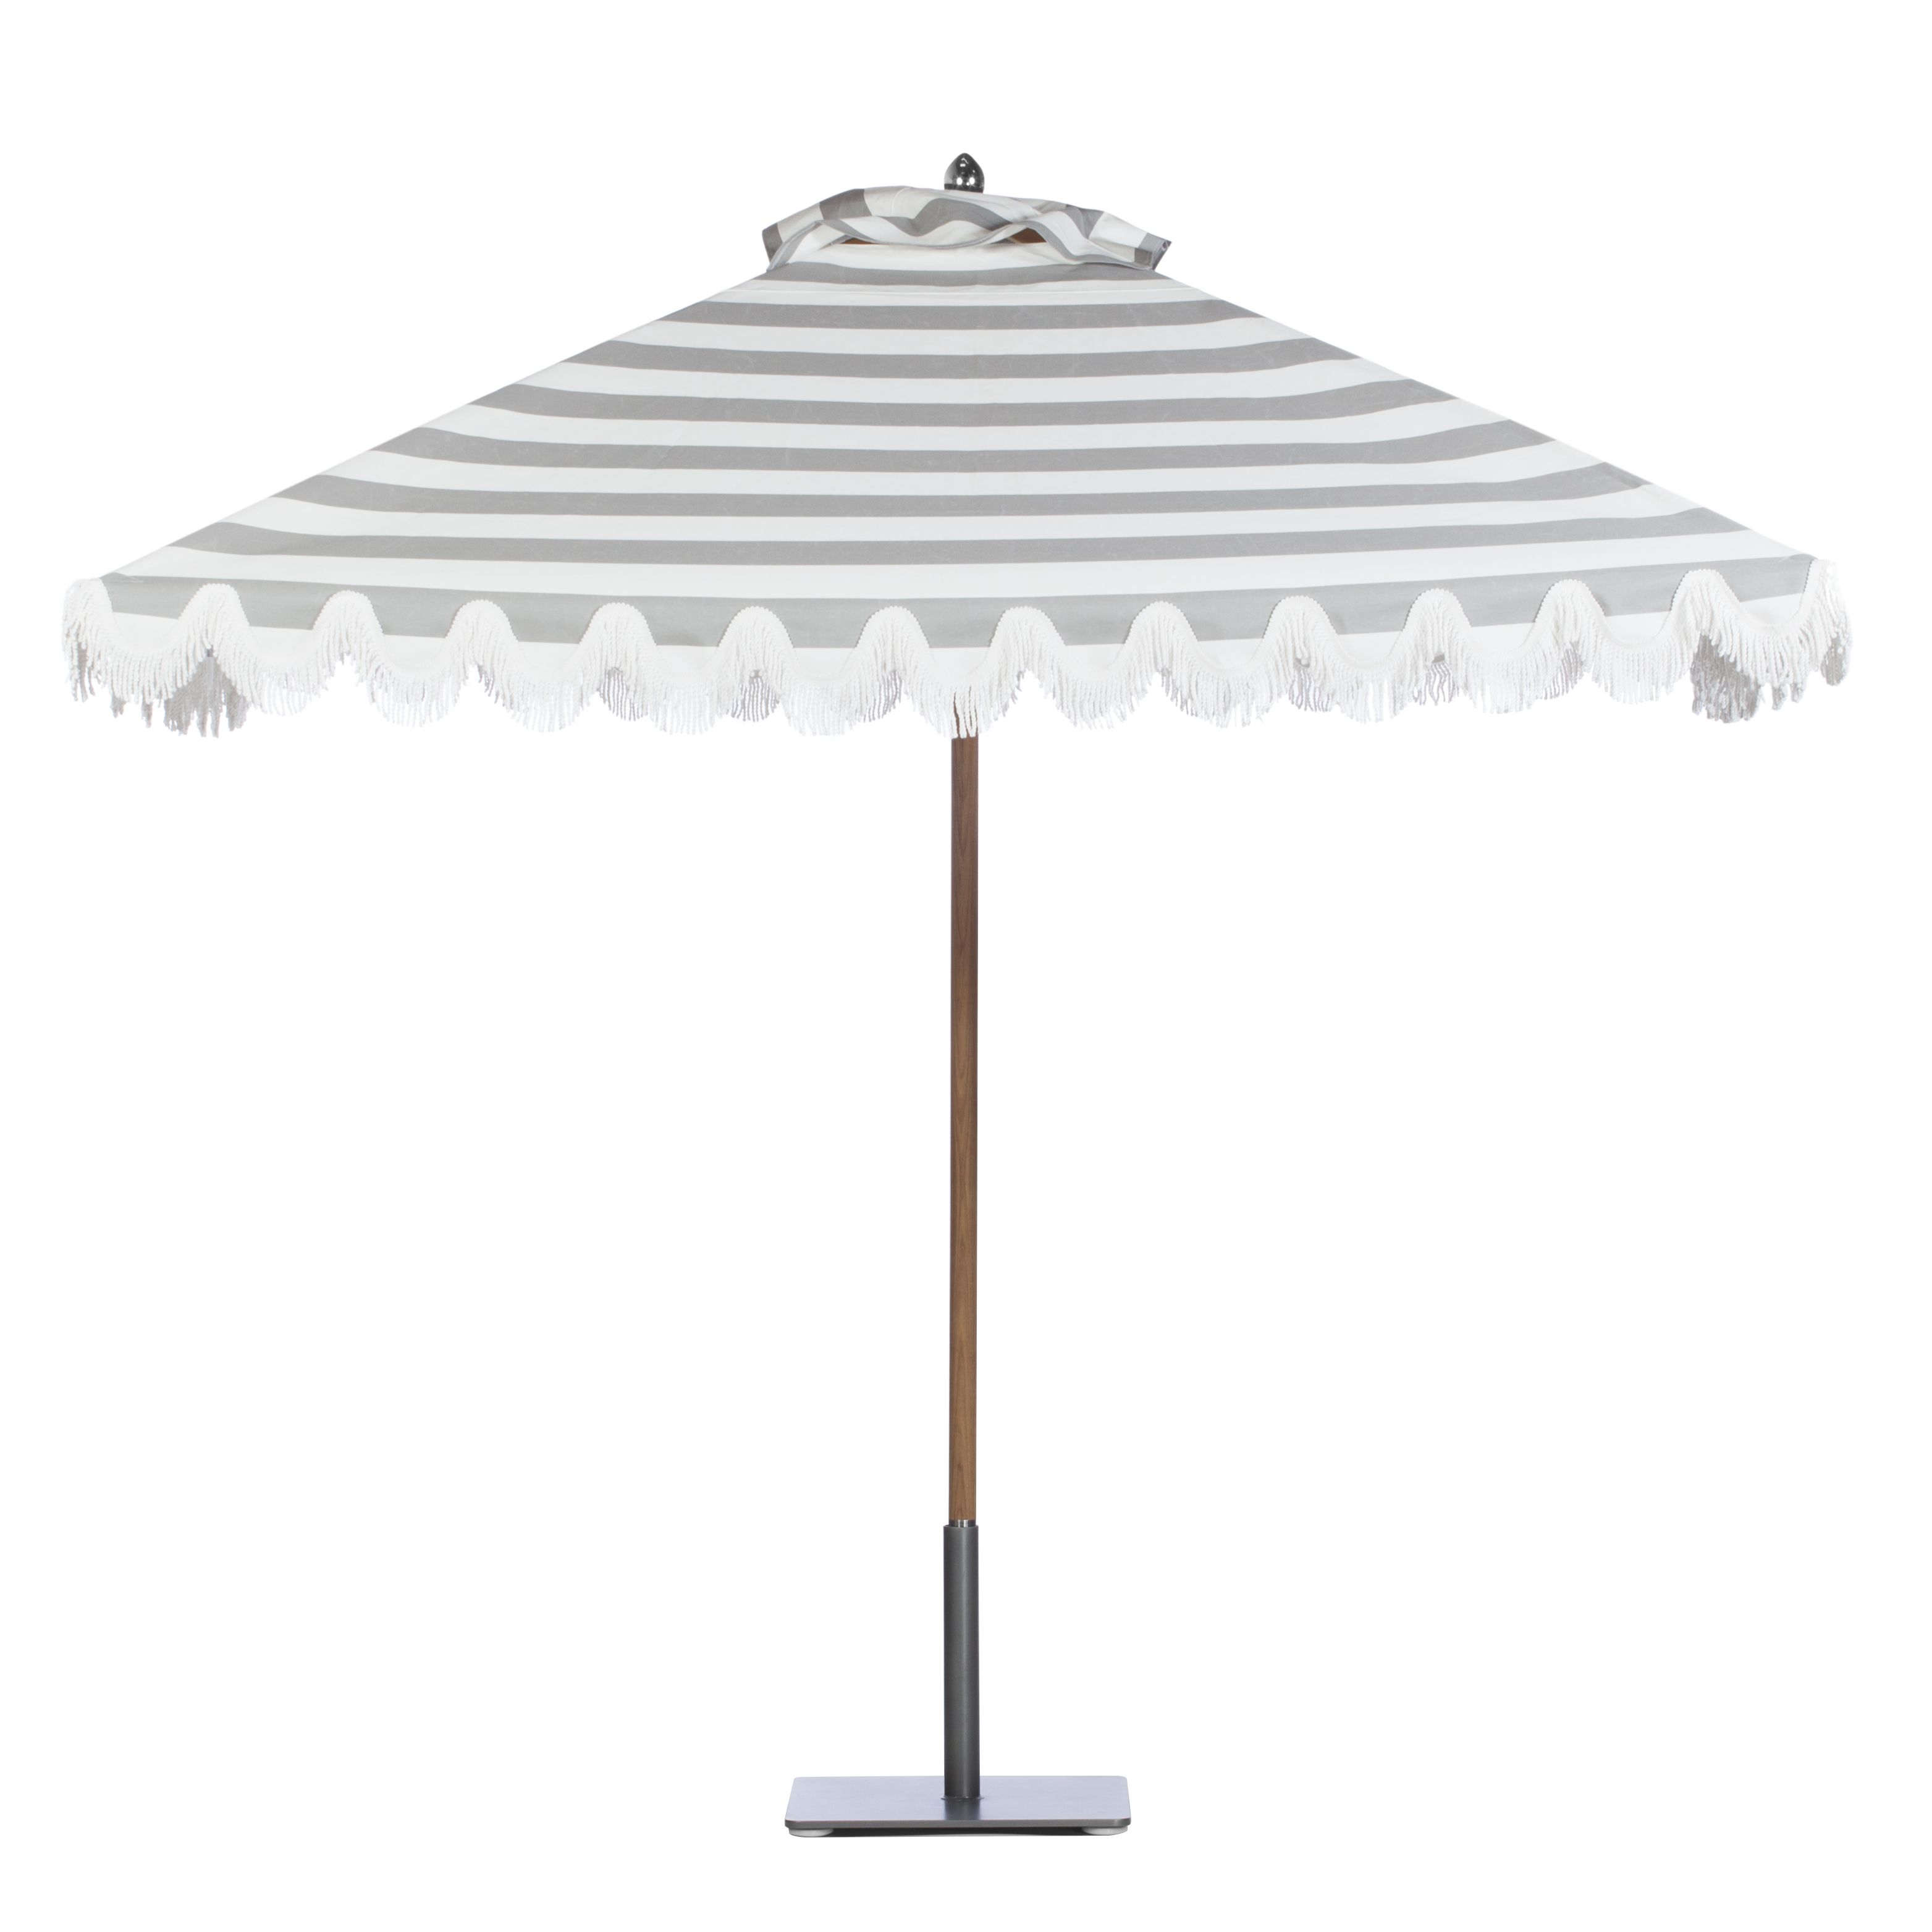 Riviera teak umbrella in Cabana Grey Stripe with stainless steel finial; scalloped style valance with White bullion fringe.